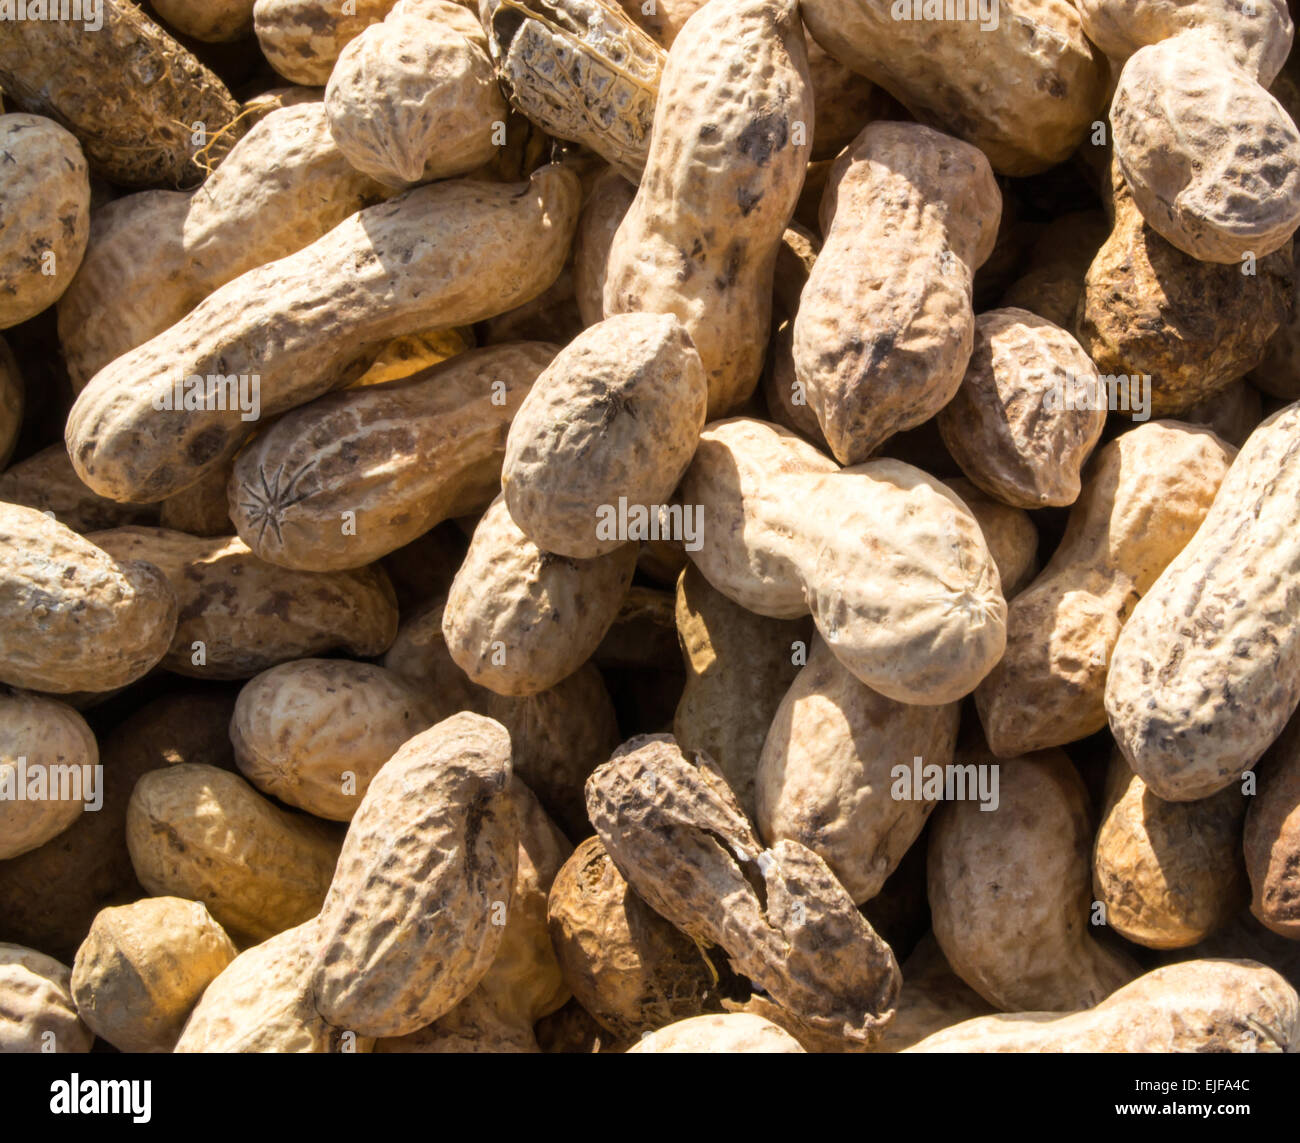 Monkey nuts are a cheap form of the famous legume peanut - Stock Image